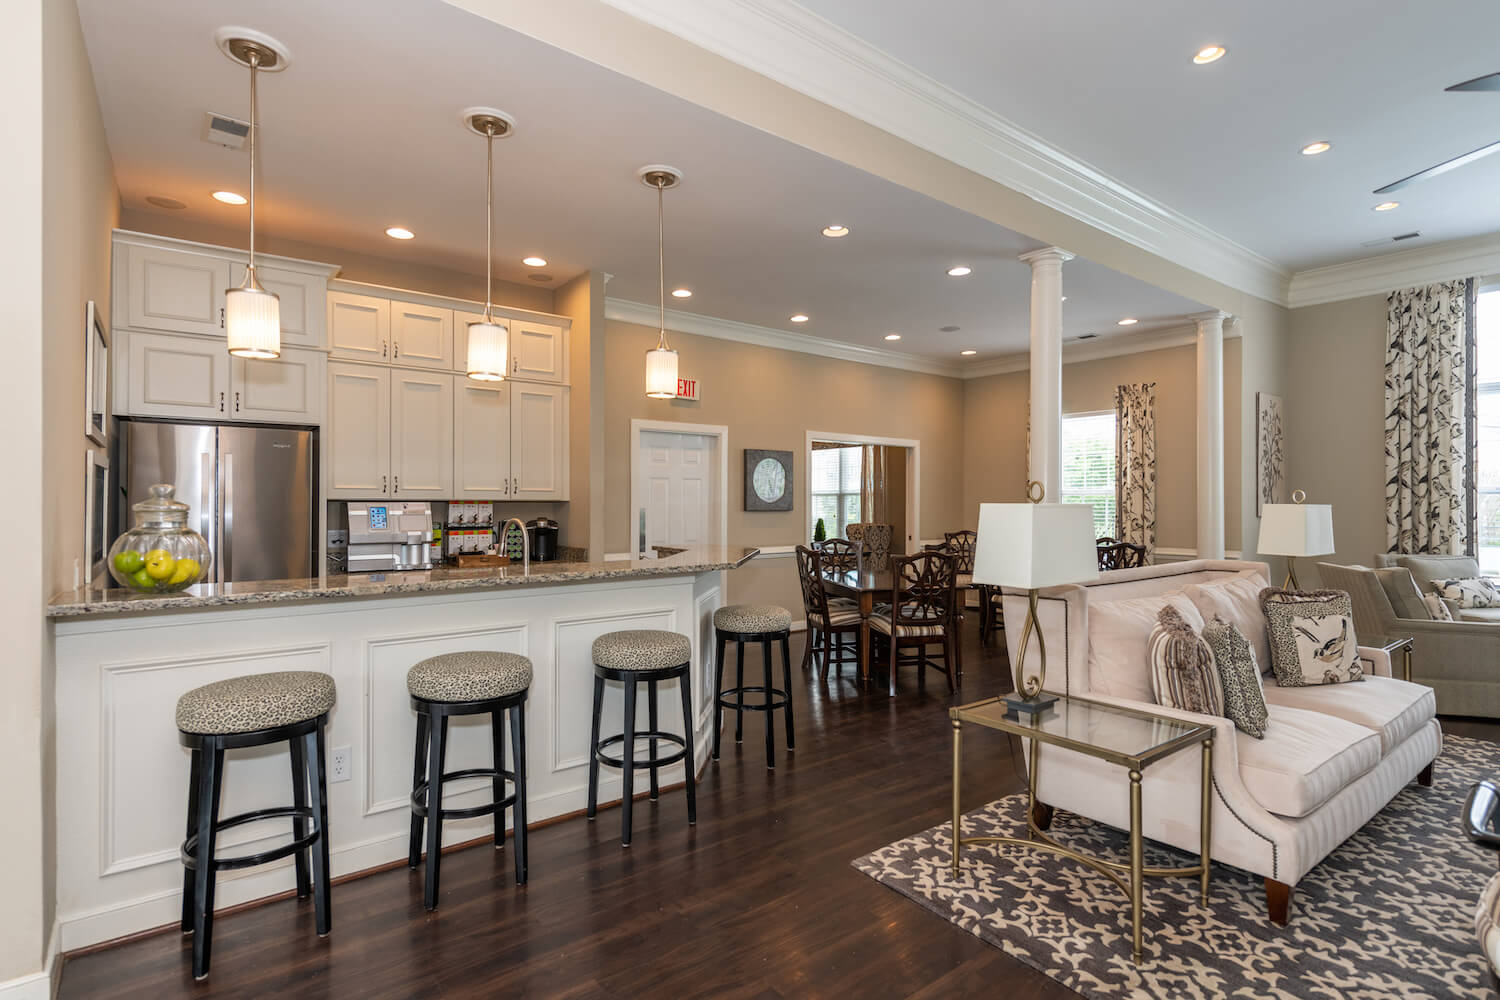 Luxury clubhouse kitchen with stainless appliances, granite countertops, and gourmet coffee maker.